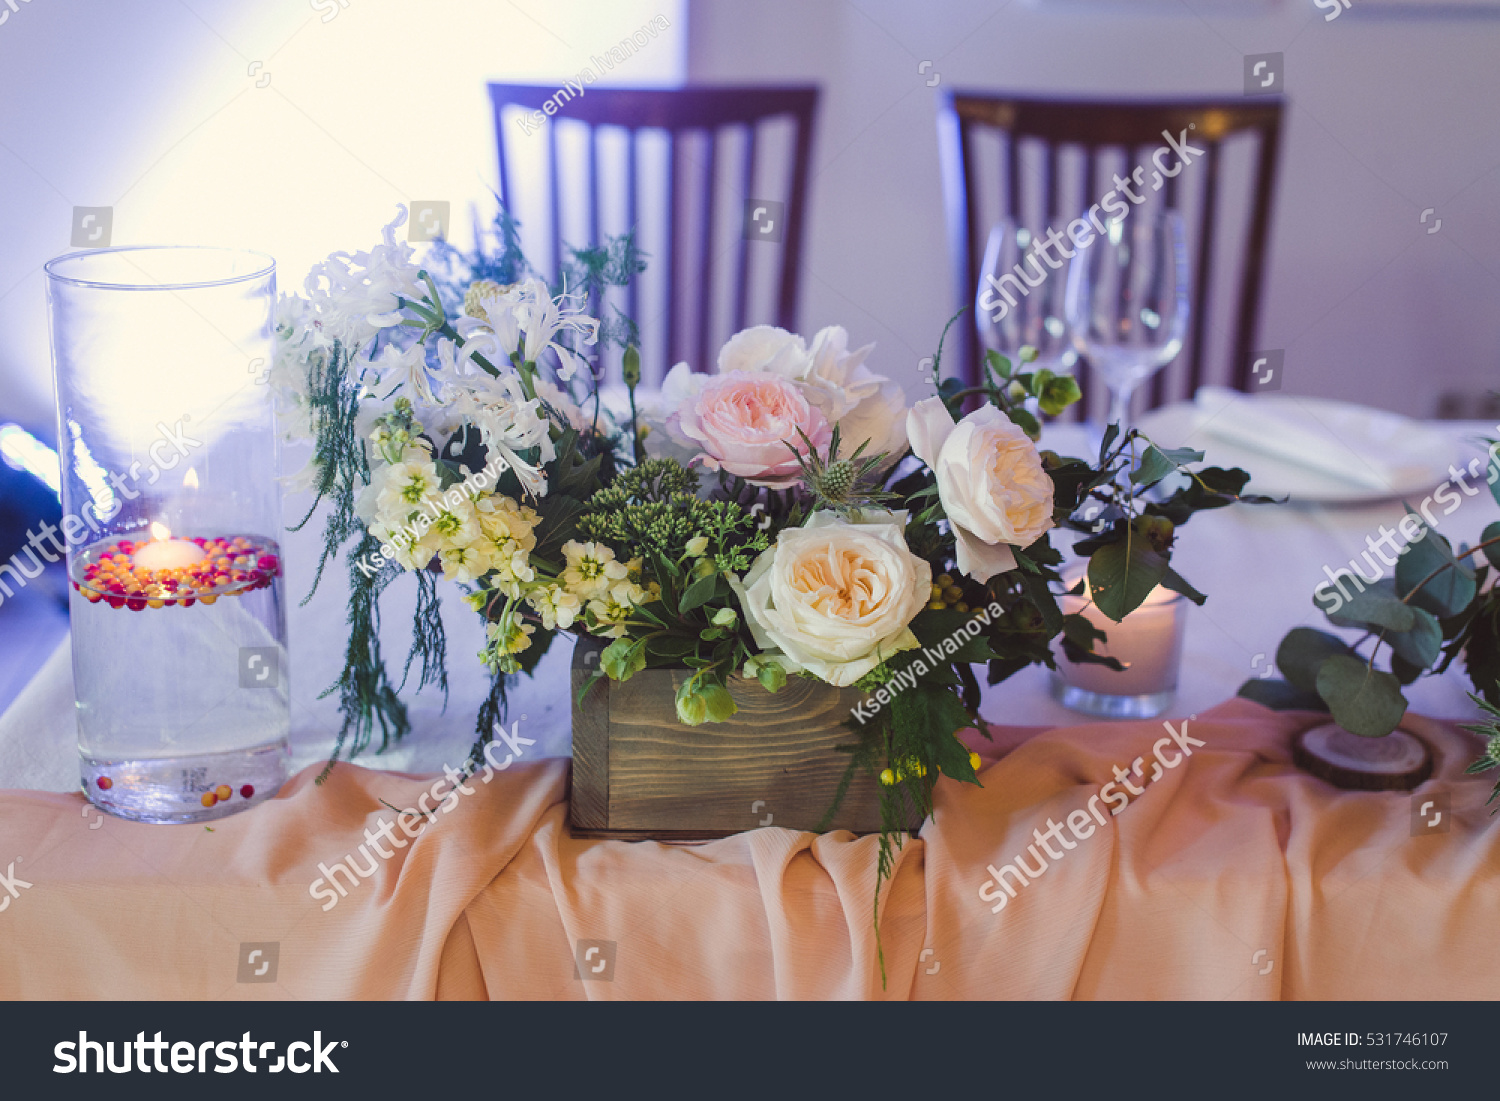 Wedding Decoration The Table Is Decorated With White Pink Flowers